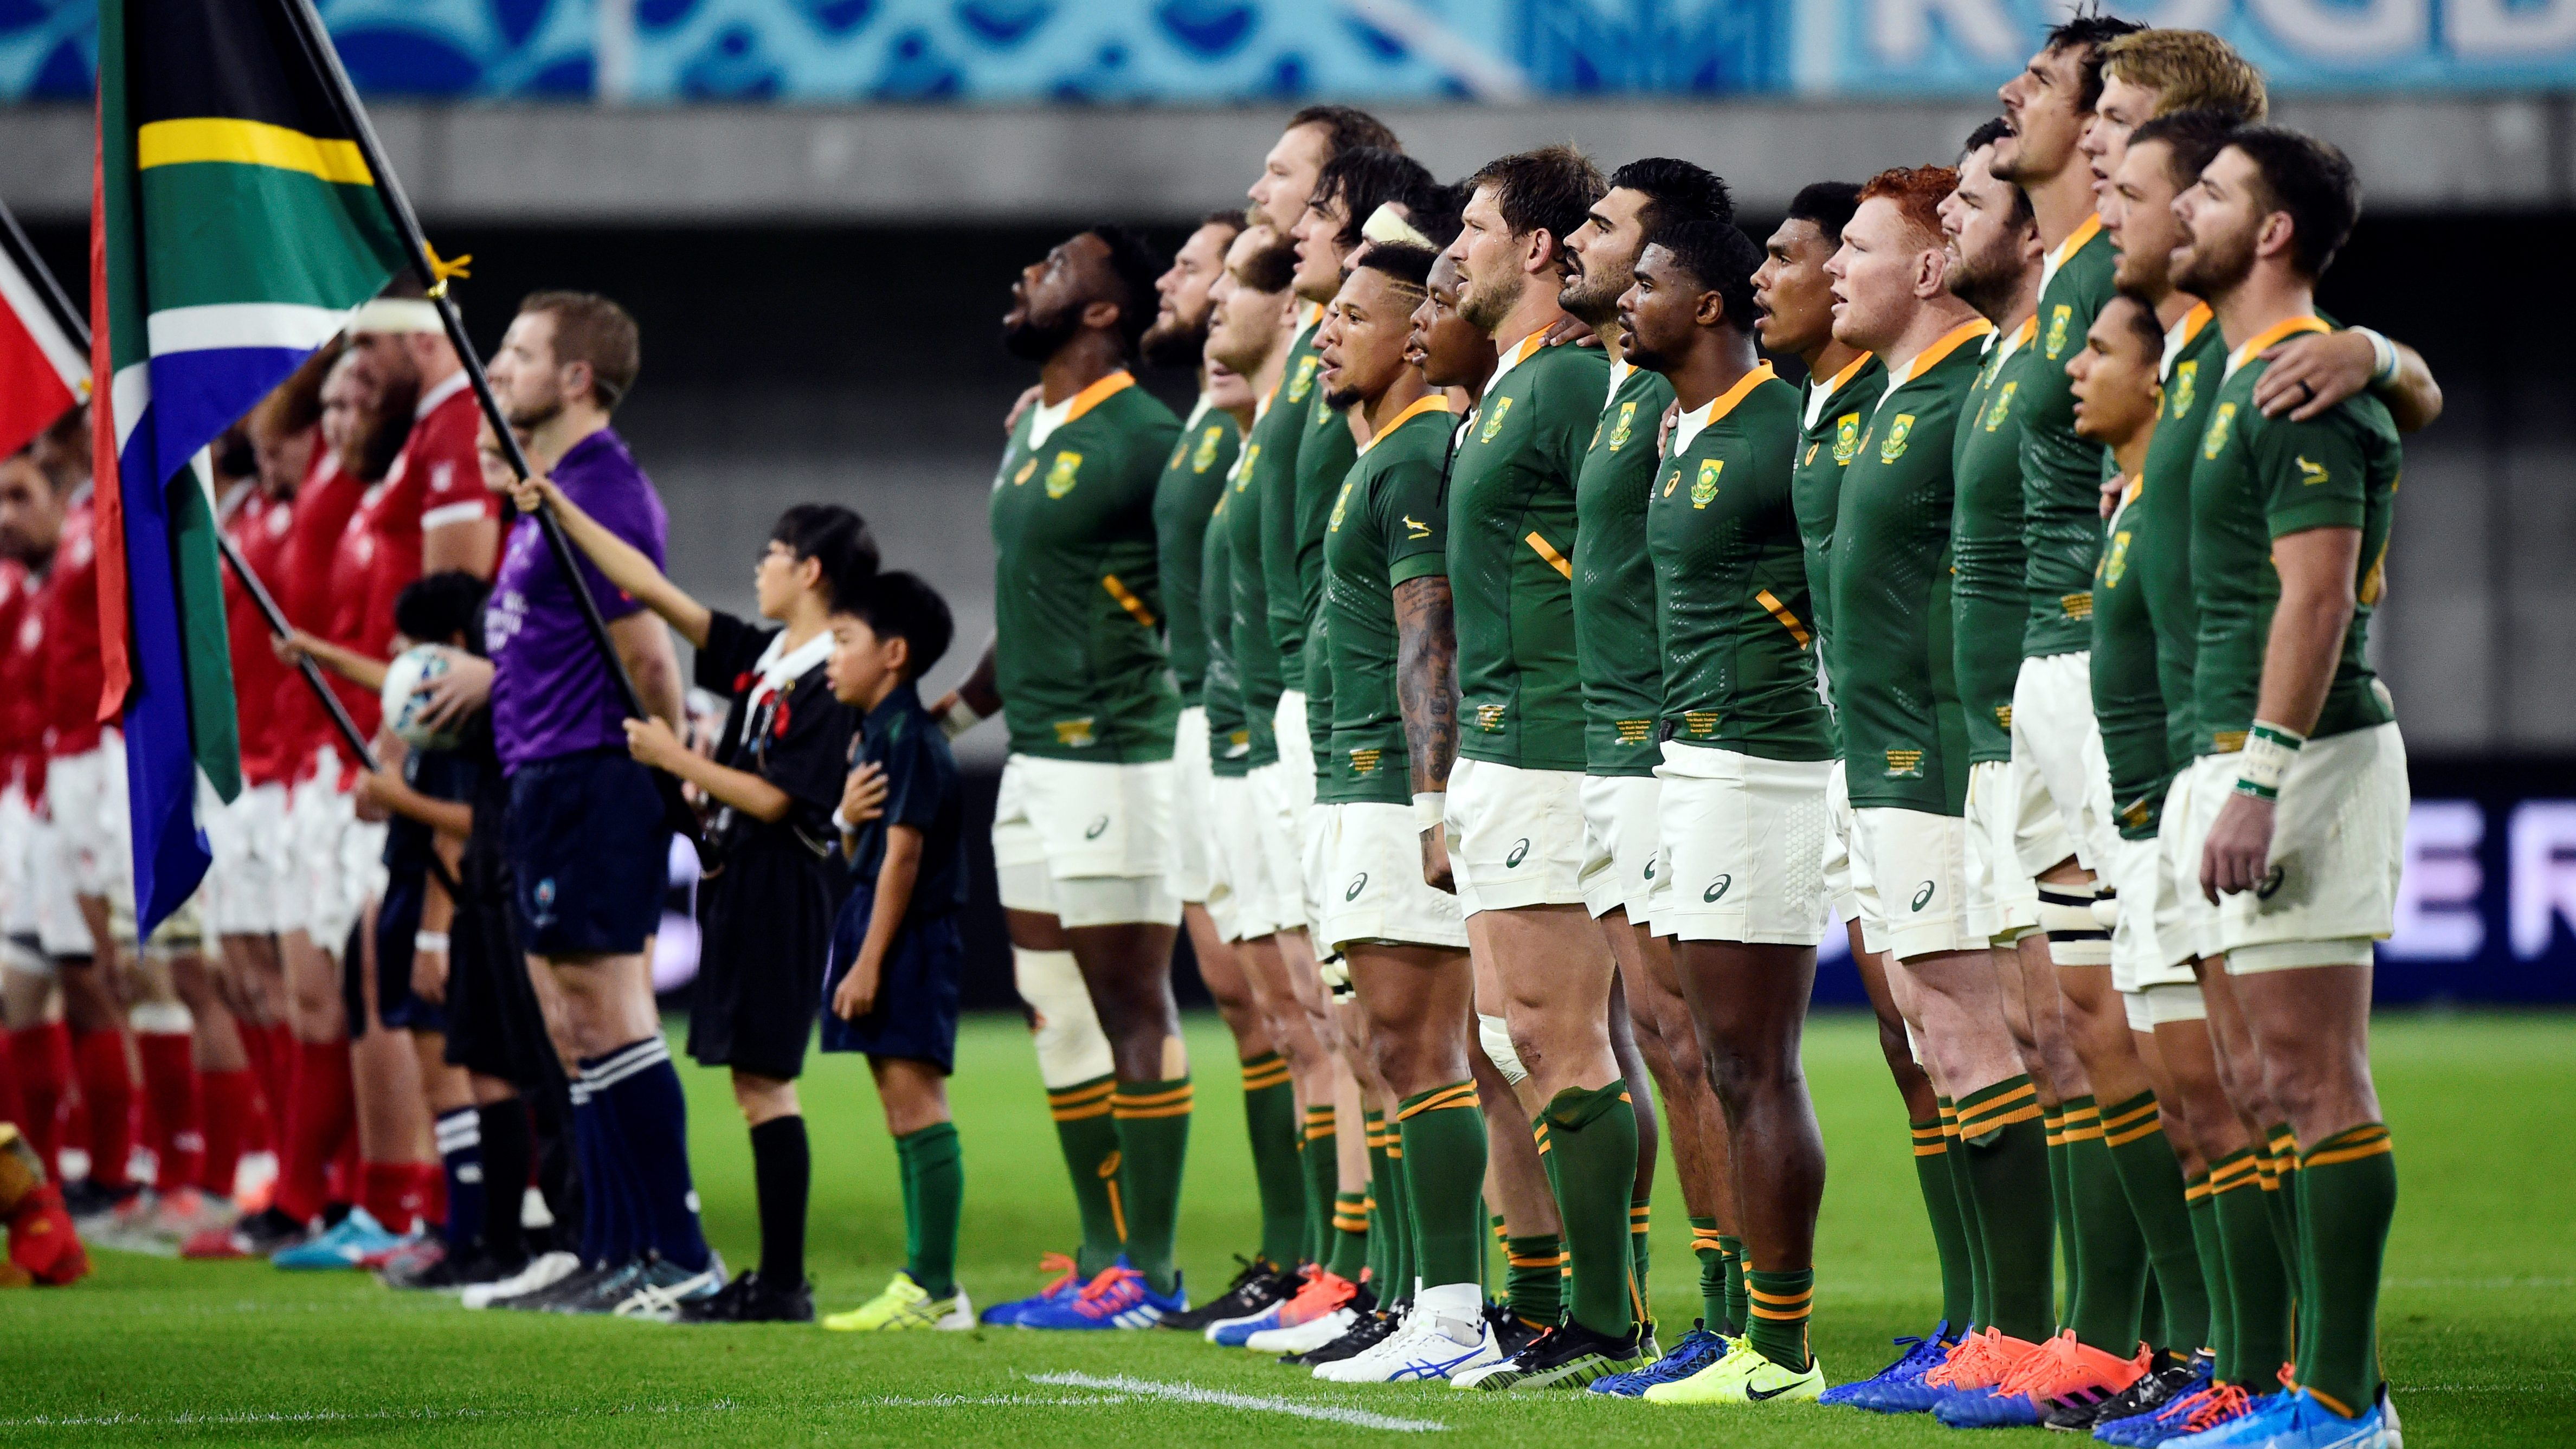 Rugby World cup reminds South Africa it's still divided on race